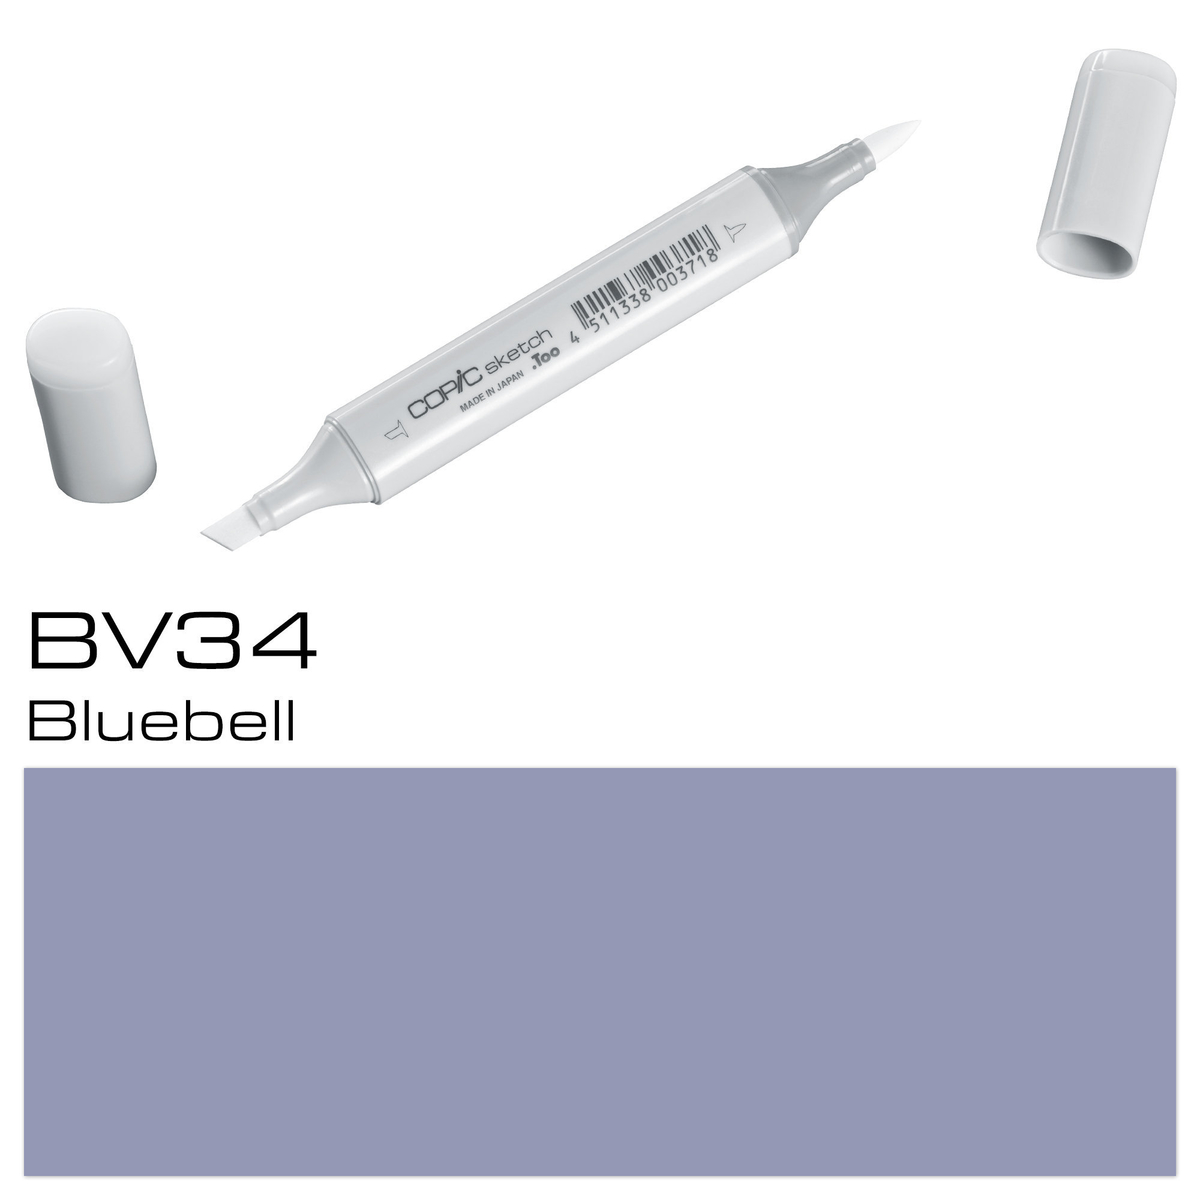 Copic Sketch BV 34 bluebell